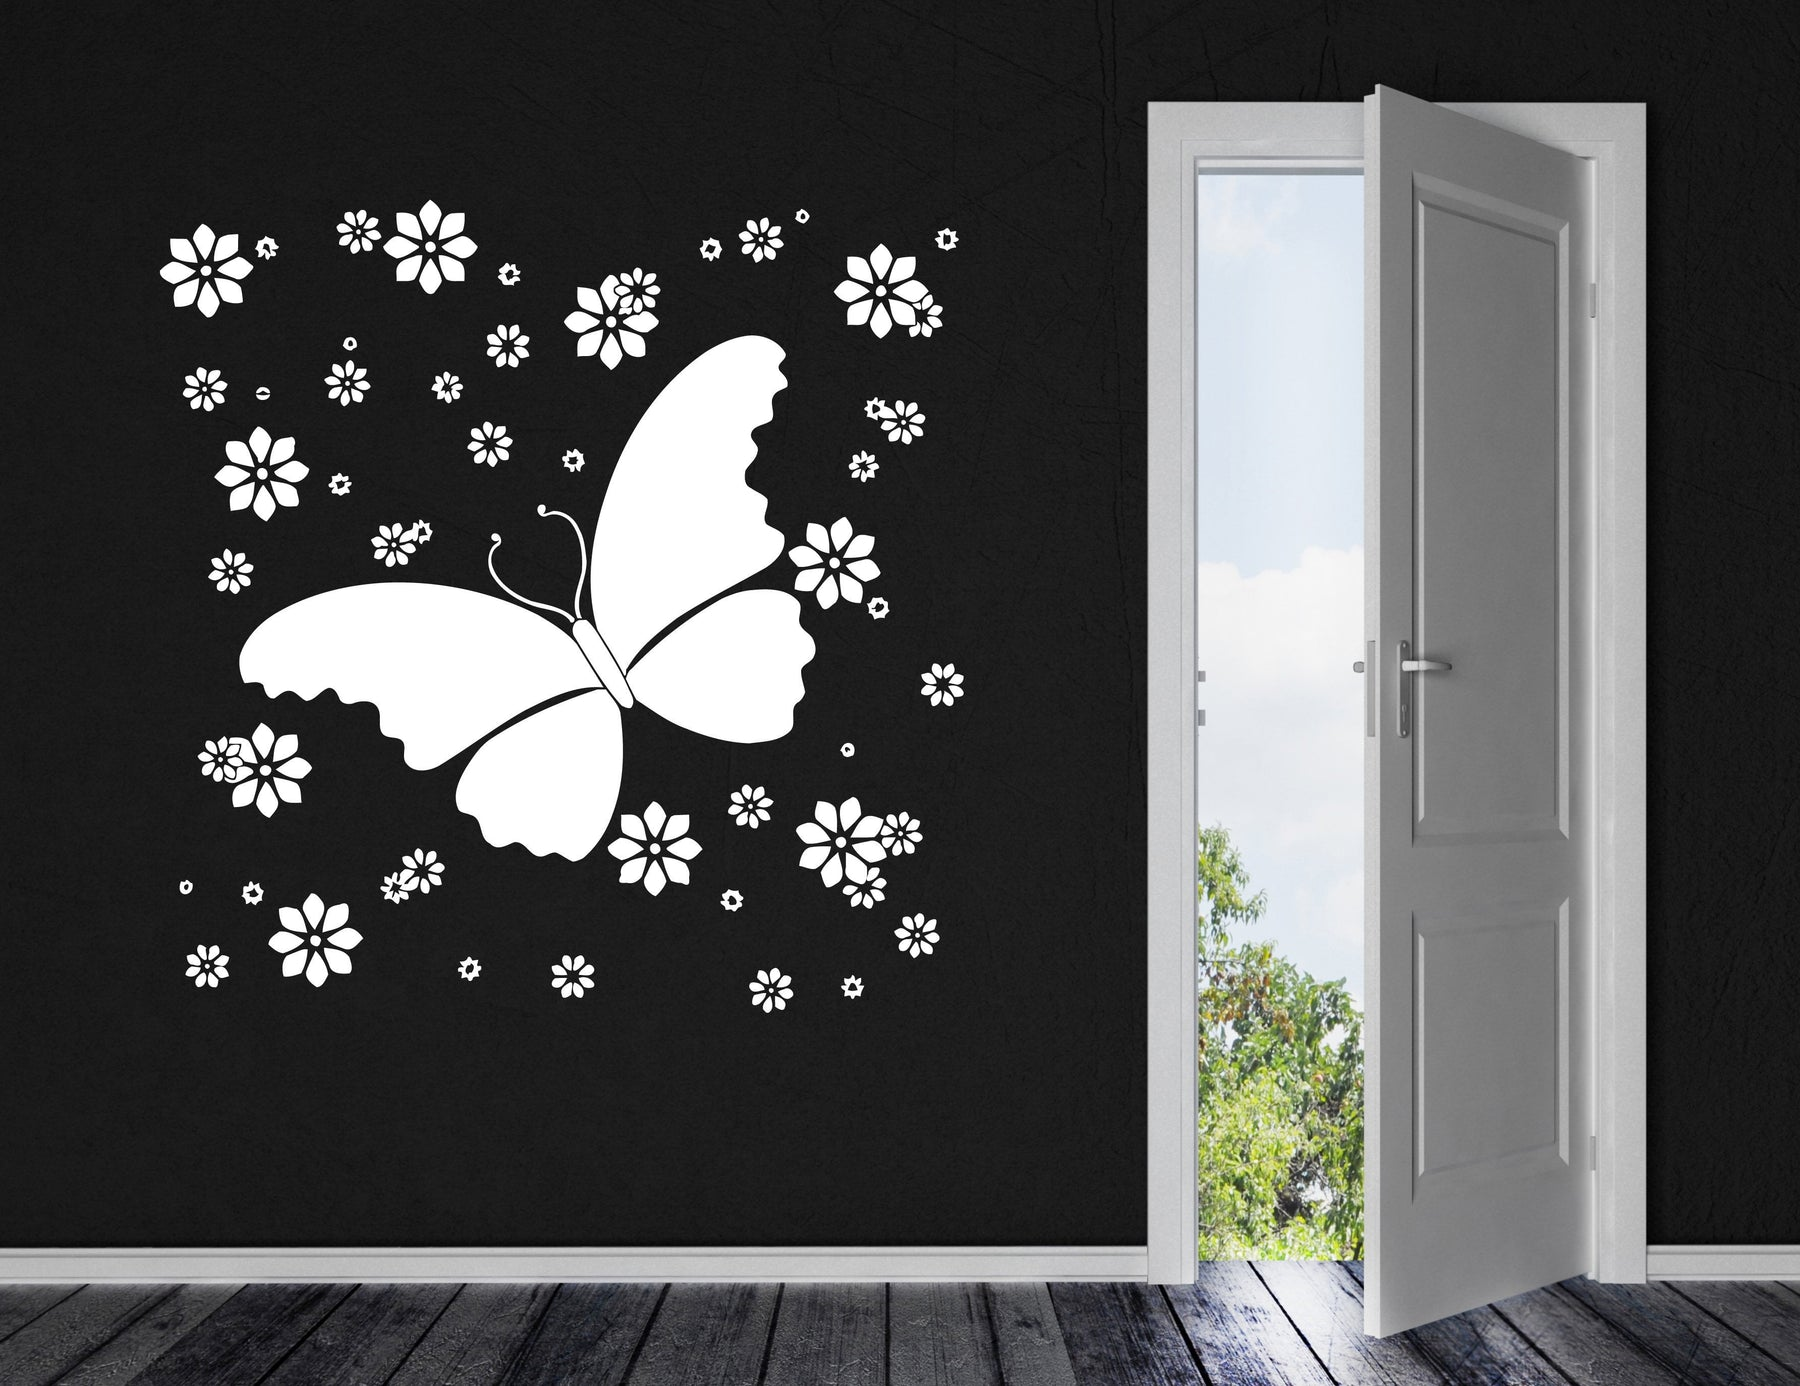 Vinyl Decal Wall Sticker Beautiful Butterfly Decor Flowers Patterns Ornament (n597)